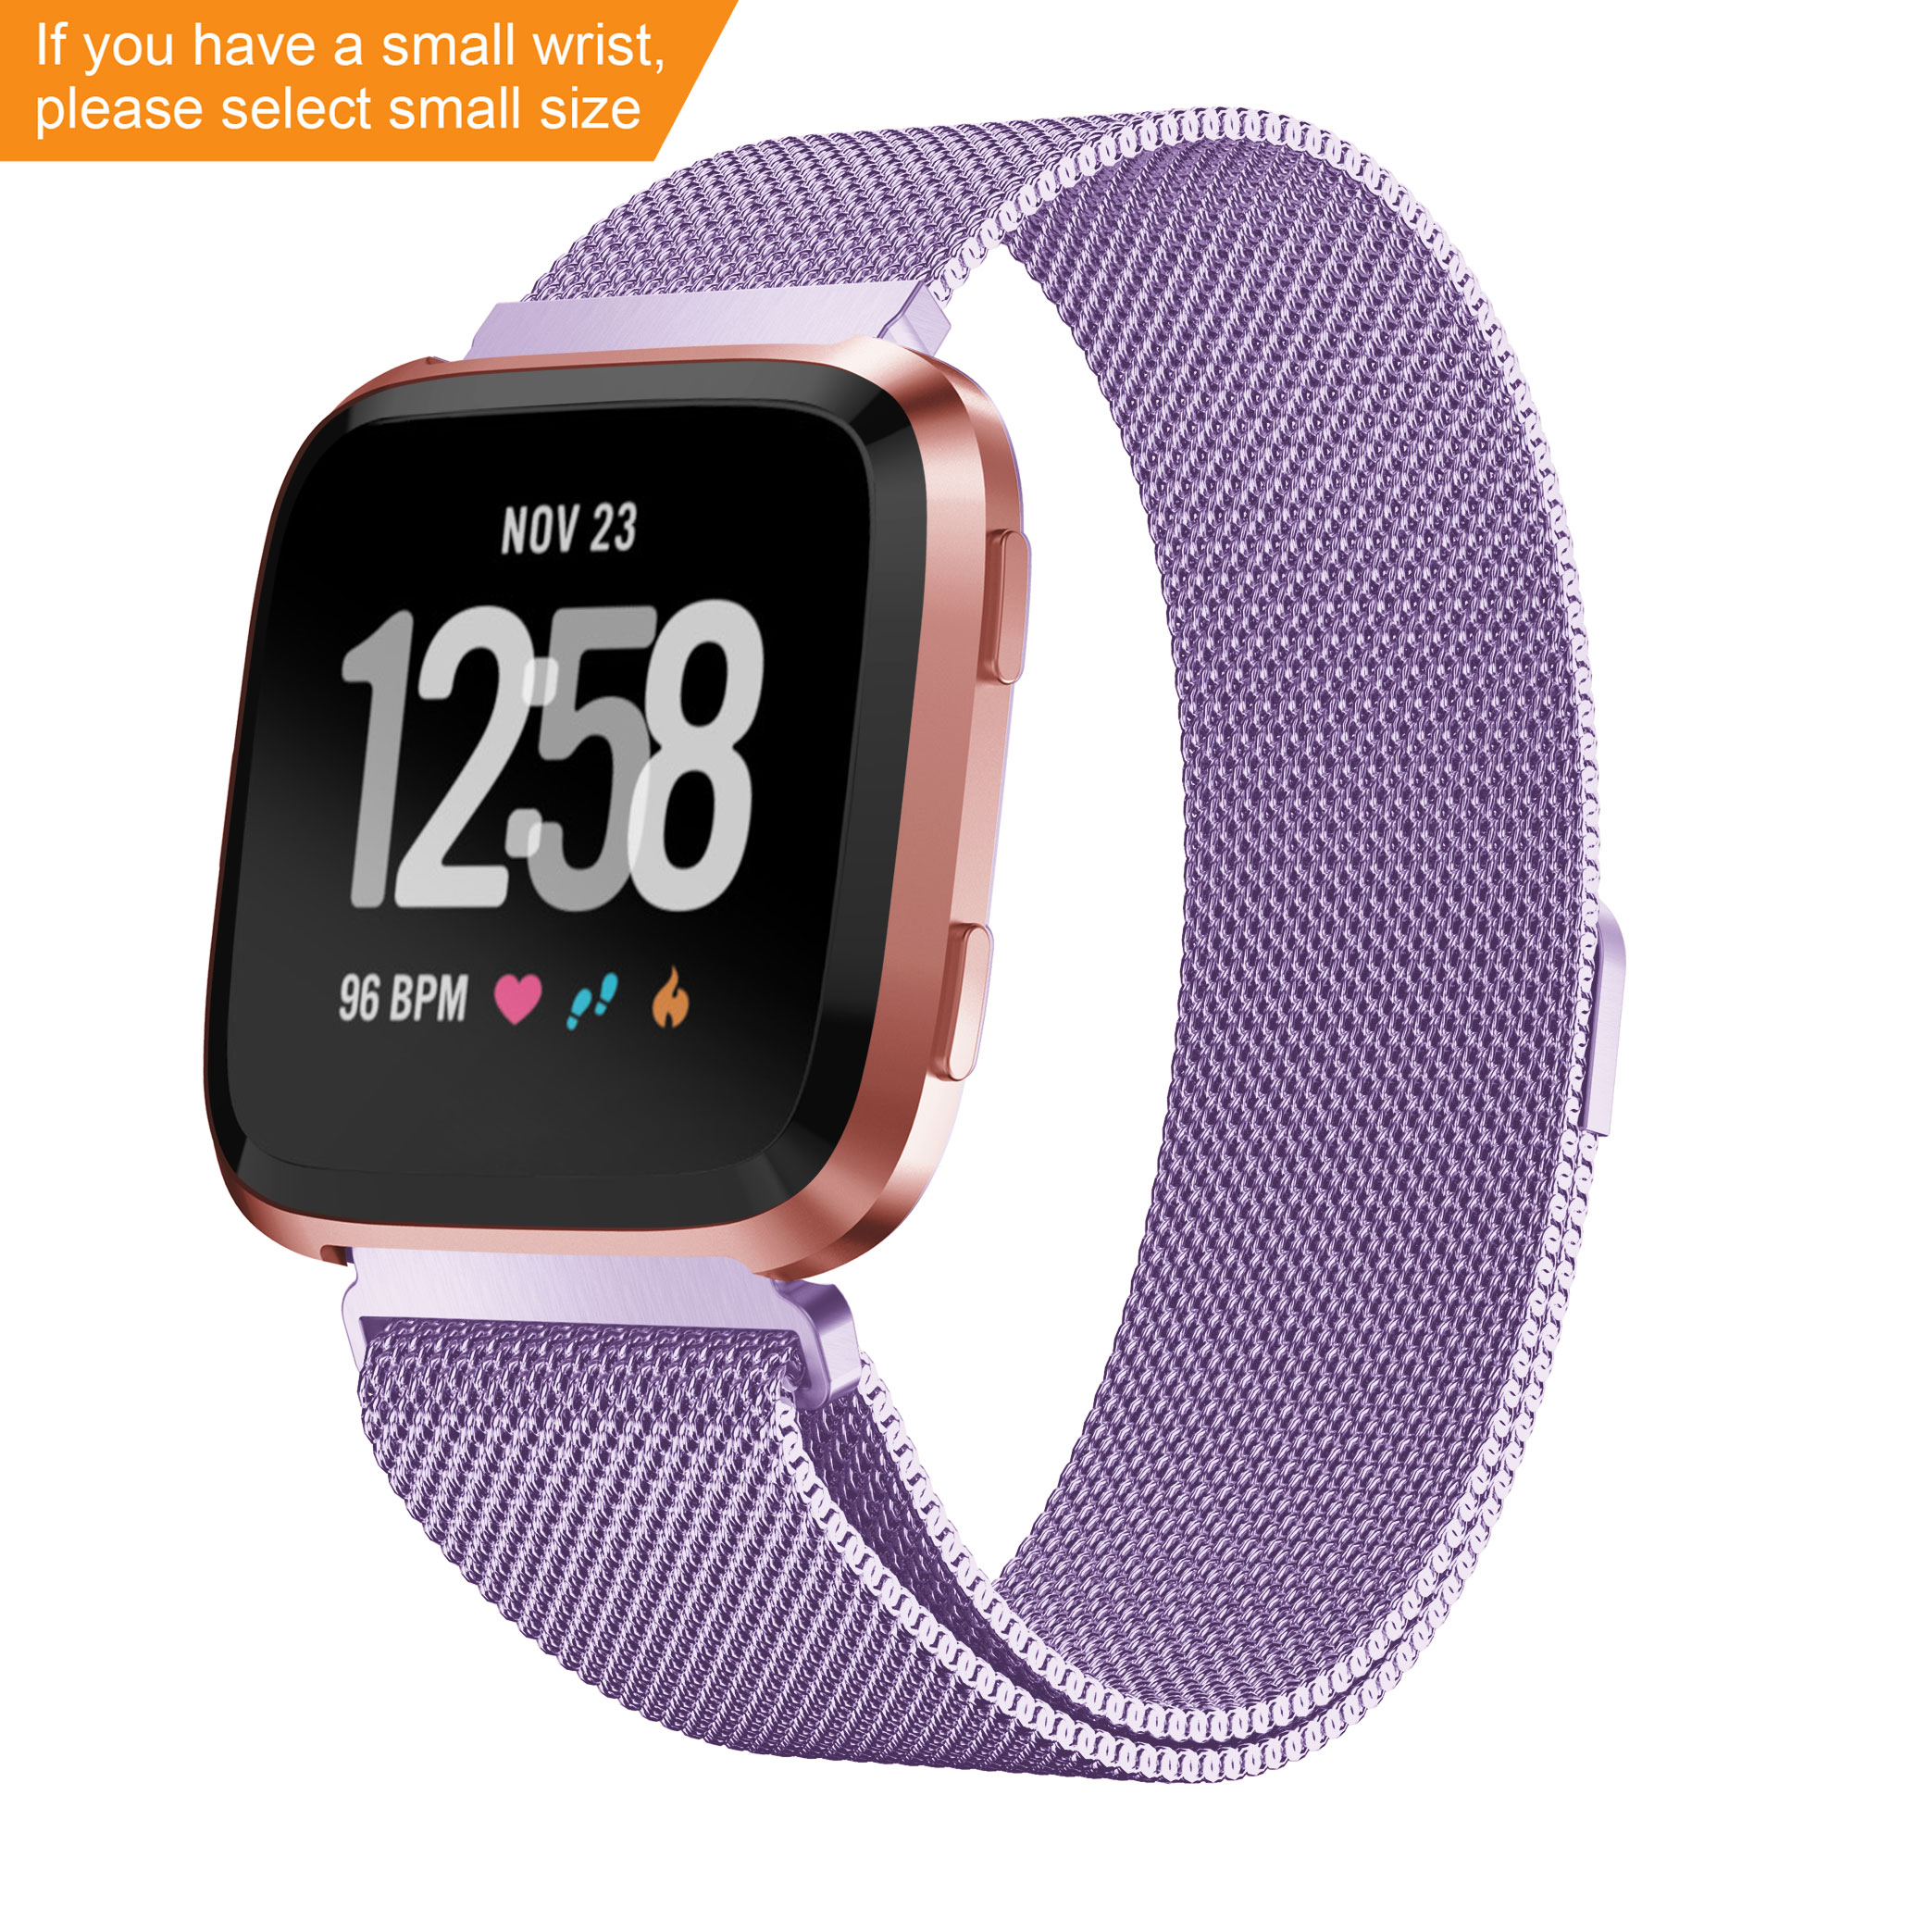 YAYUU Magnetic Milanese Loop Band For Fitbit Versa /Blzae Stainless Steel Wrist Strap For Fitbit Versa 2 /Versa Lite SmartWatch